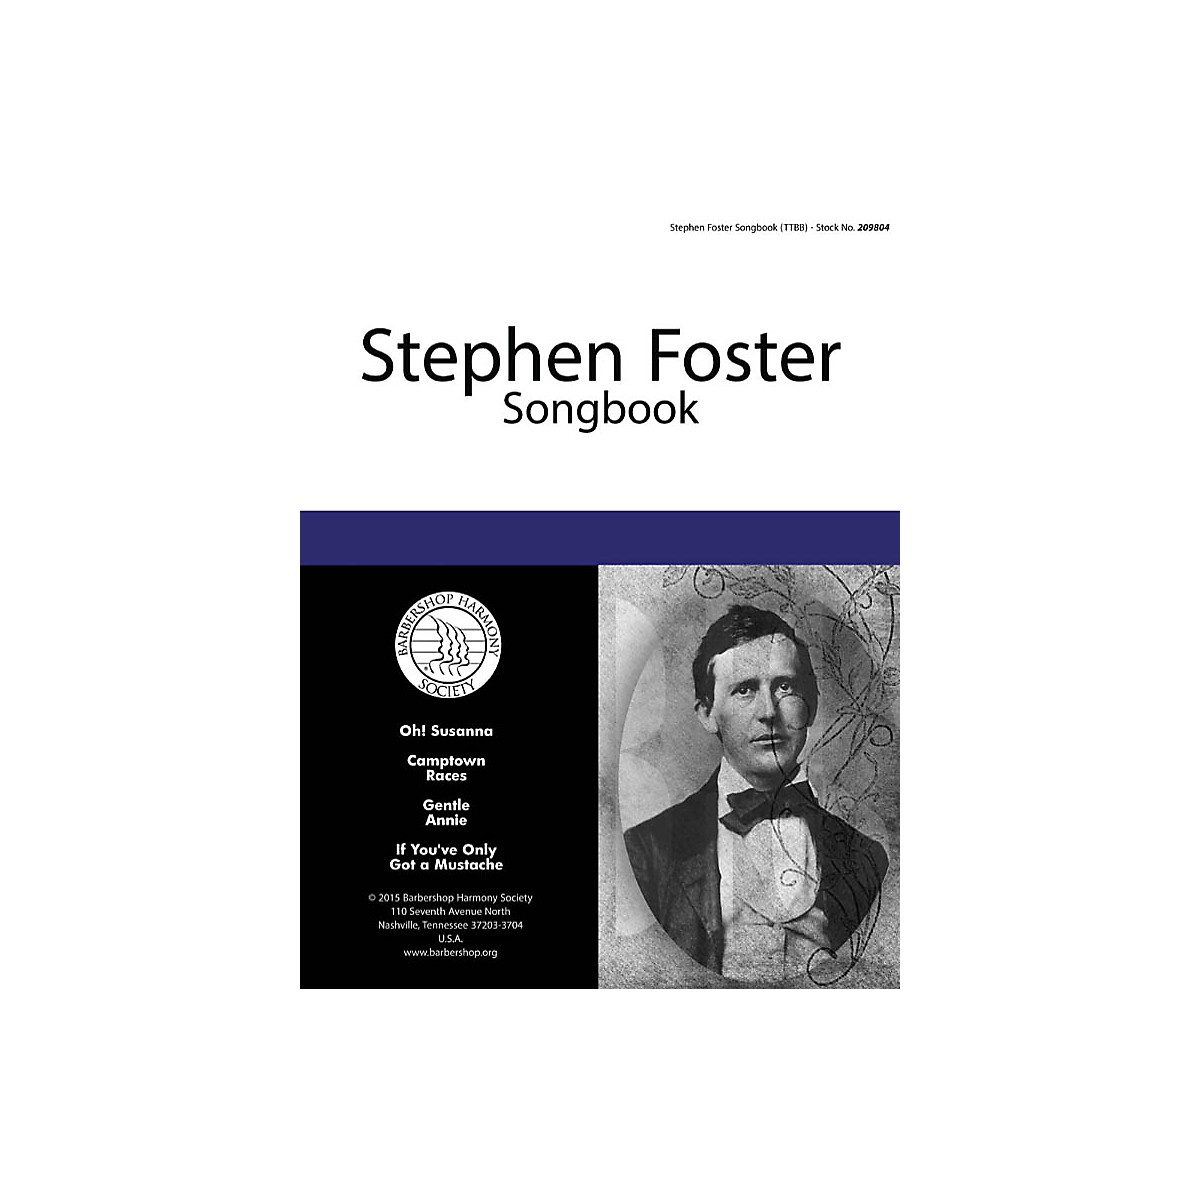 Hal Leonard Stephen Foster Songbook TTBB A Cappella composed by Stephen Foster